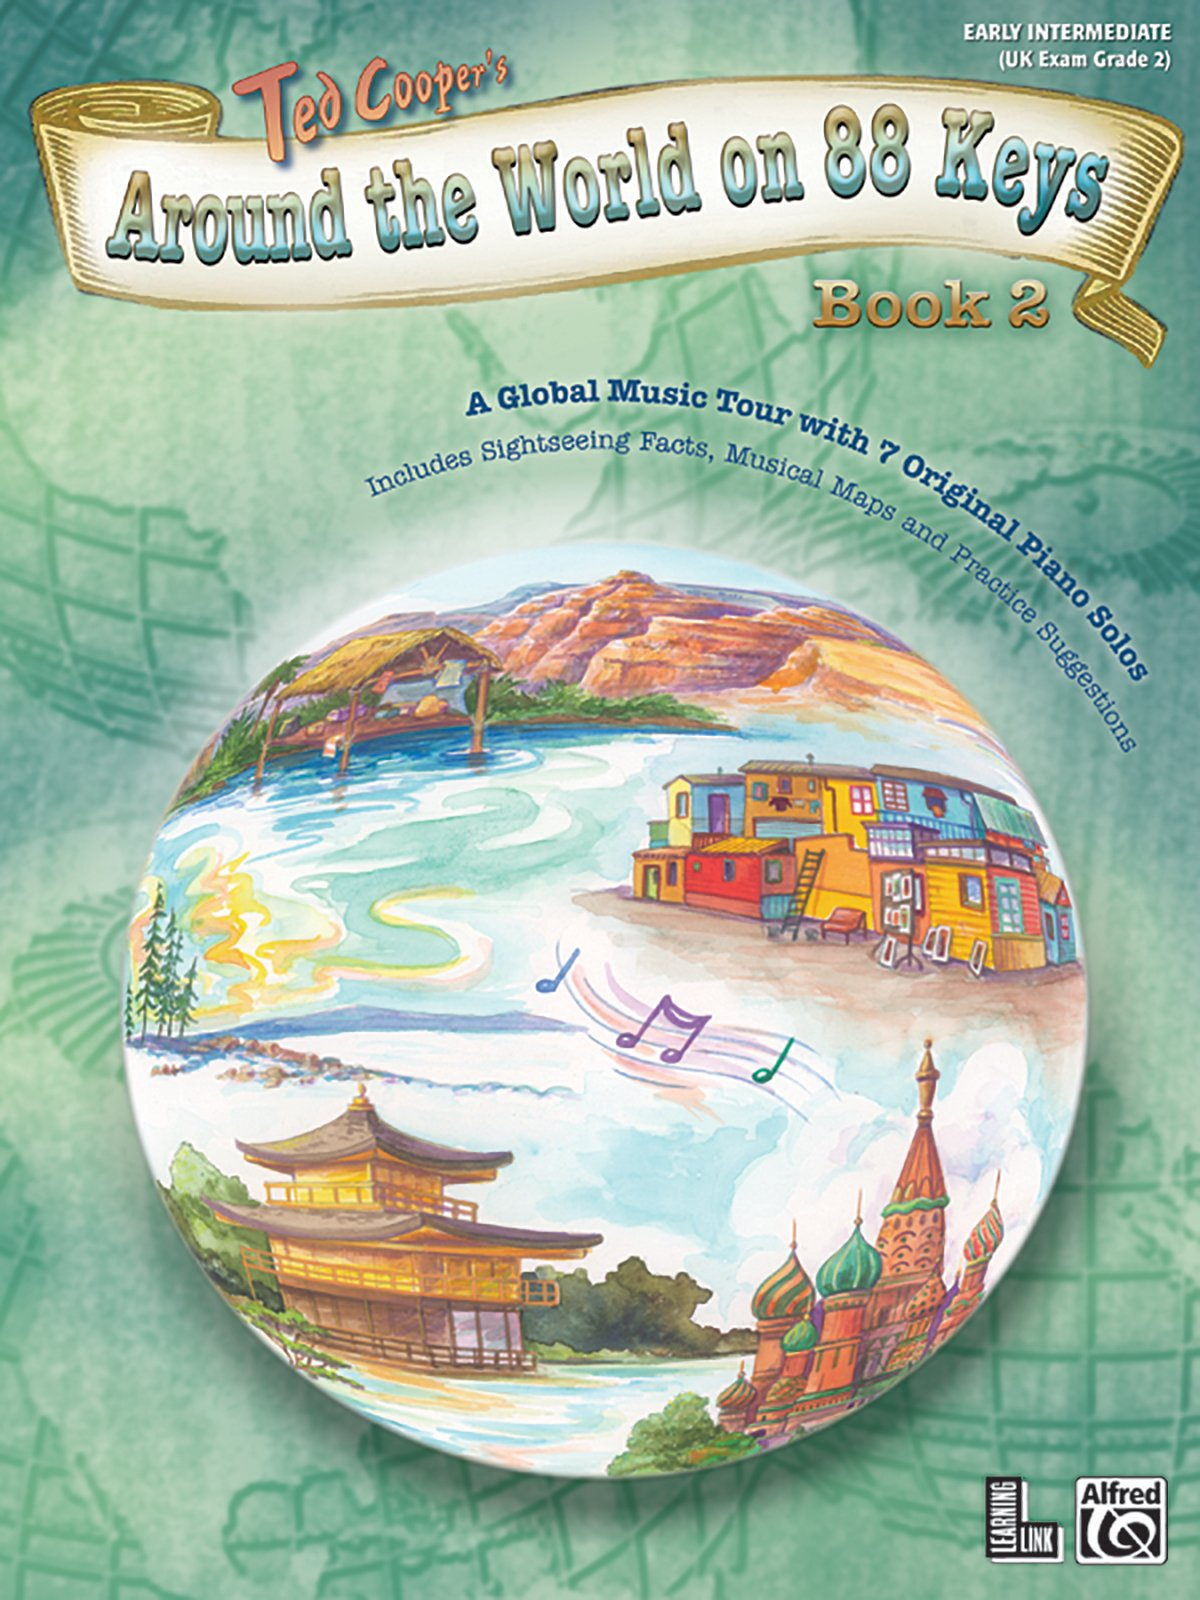 Around the World on 88 Keys, Bk 2: A Global Music Tour with 7 Original Piano Solos (Learning Link) PDF